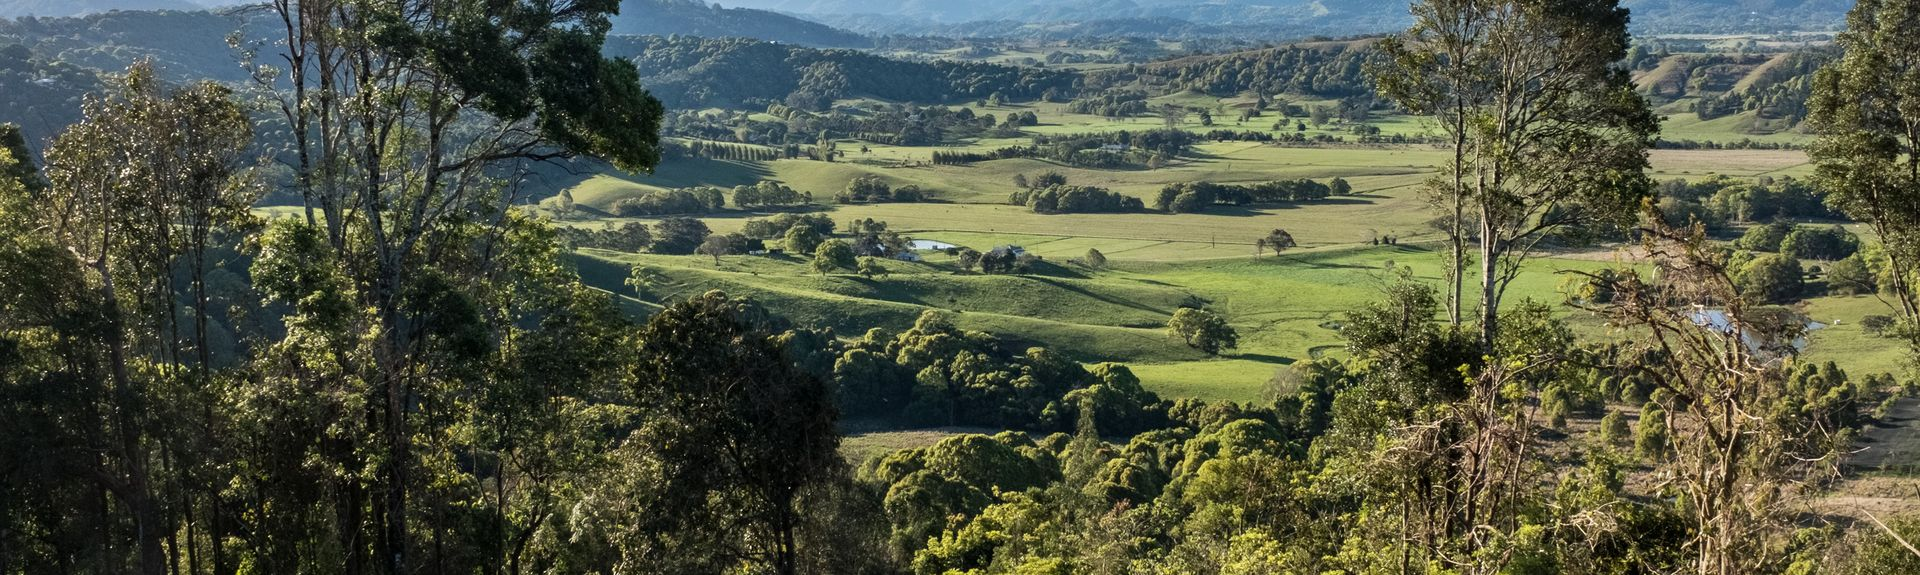 Byron Bay Hinterland, New South Wales, Australien